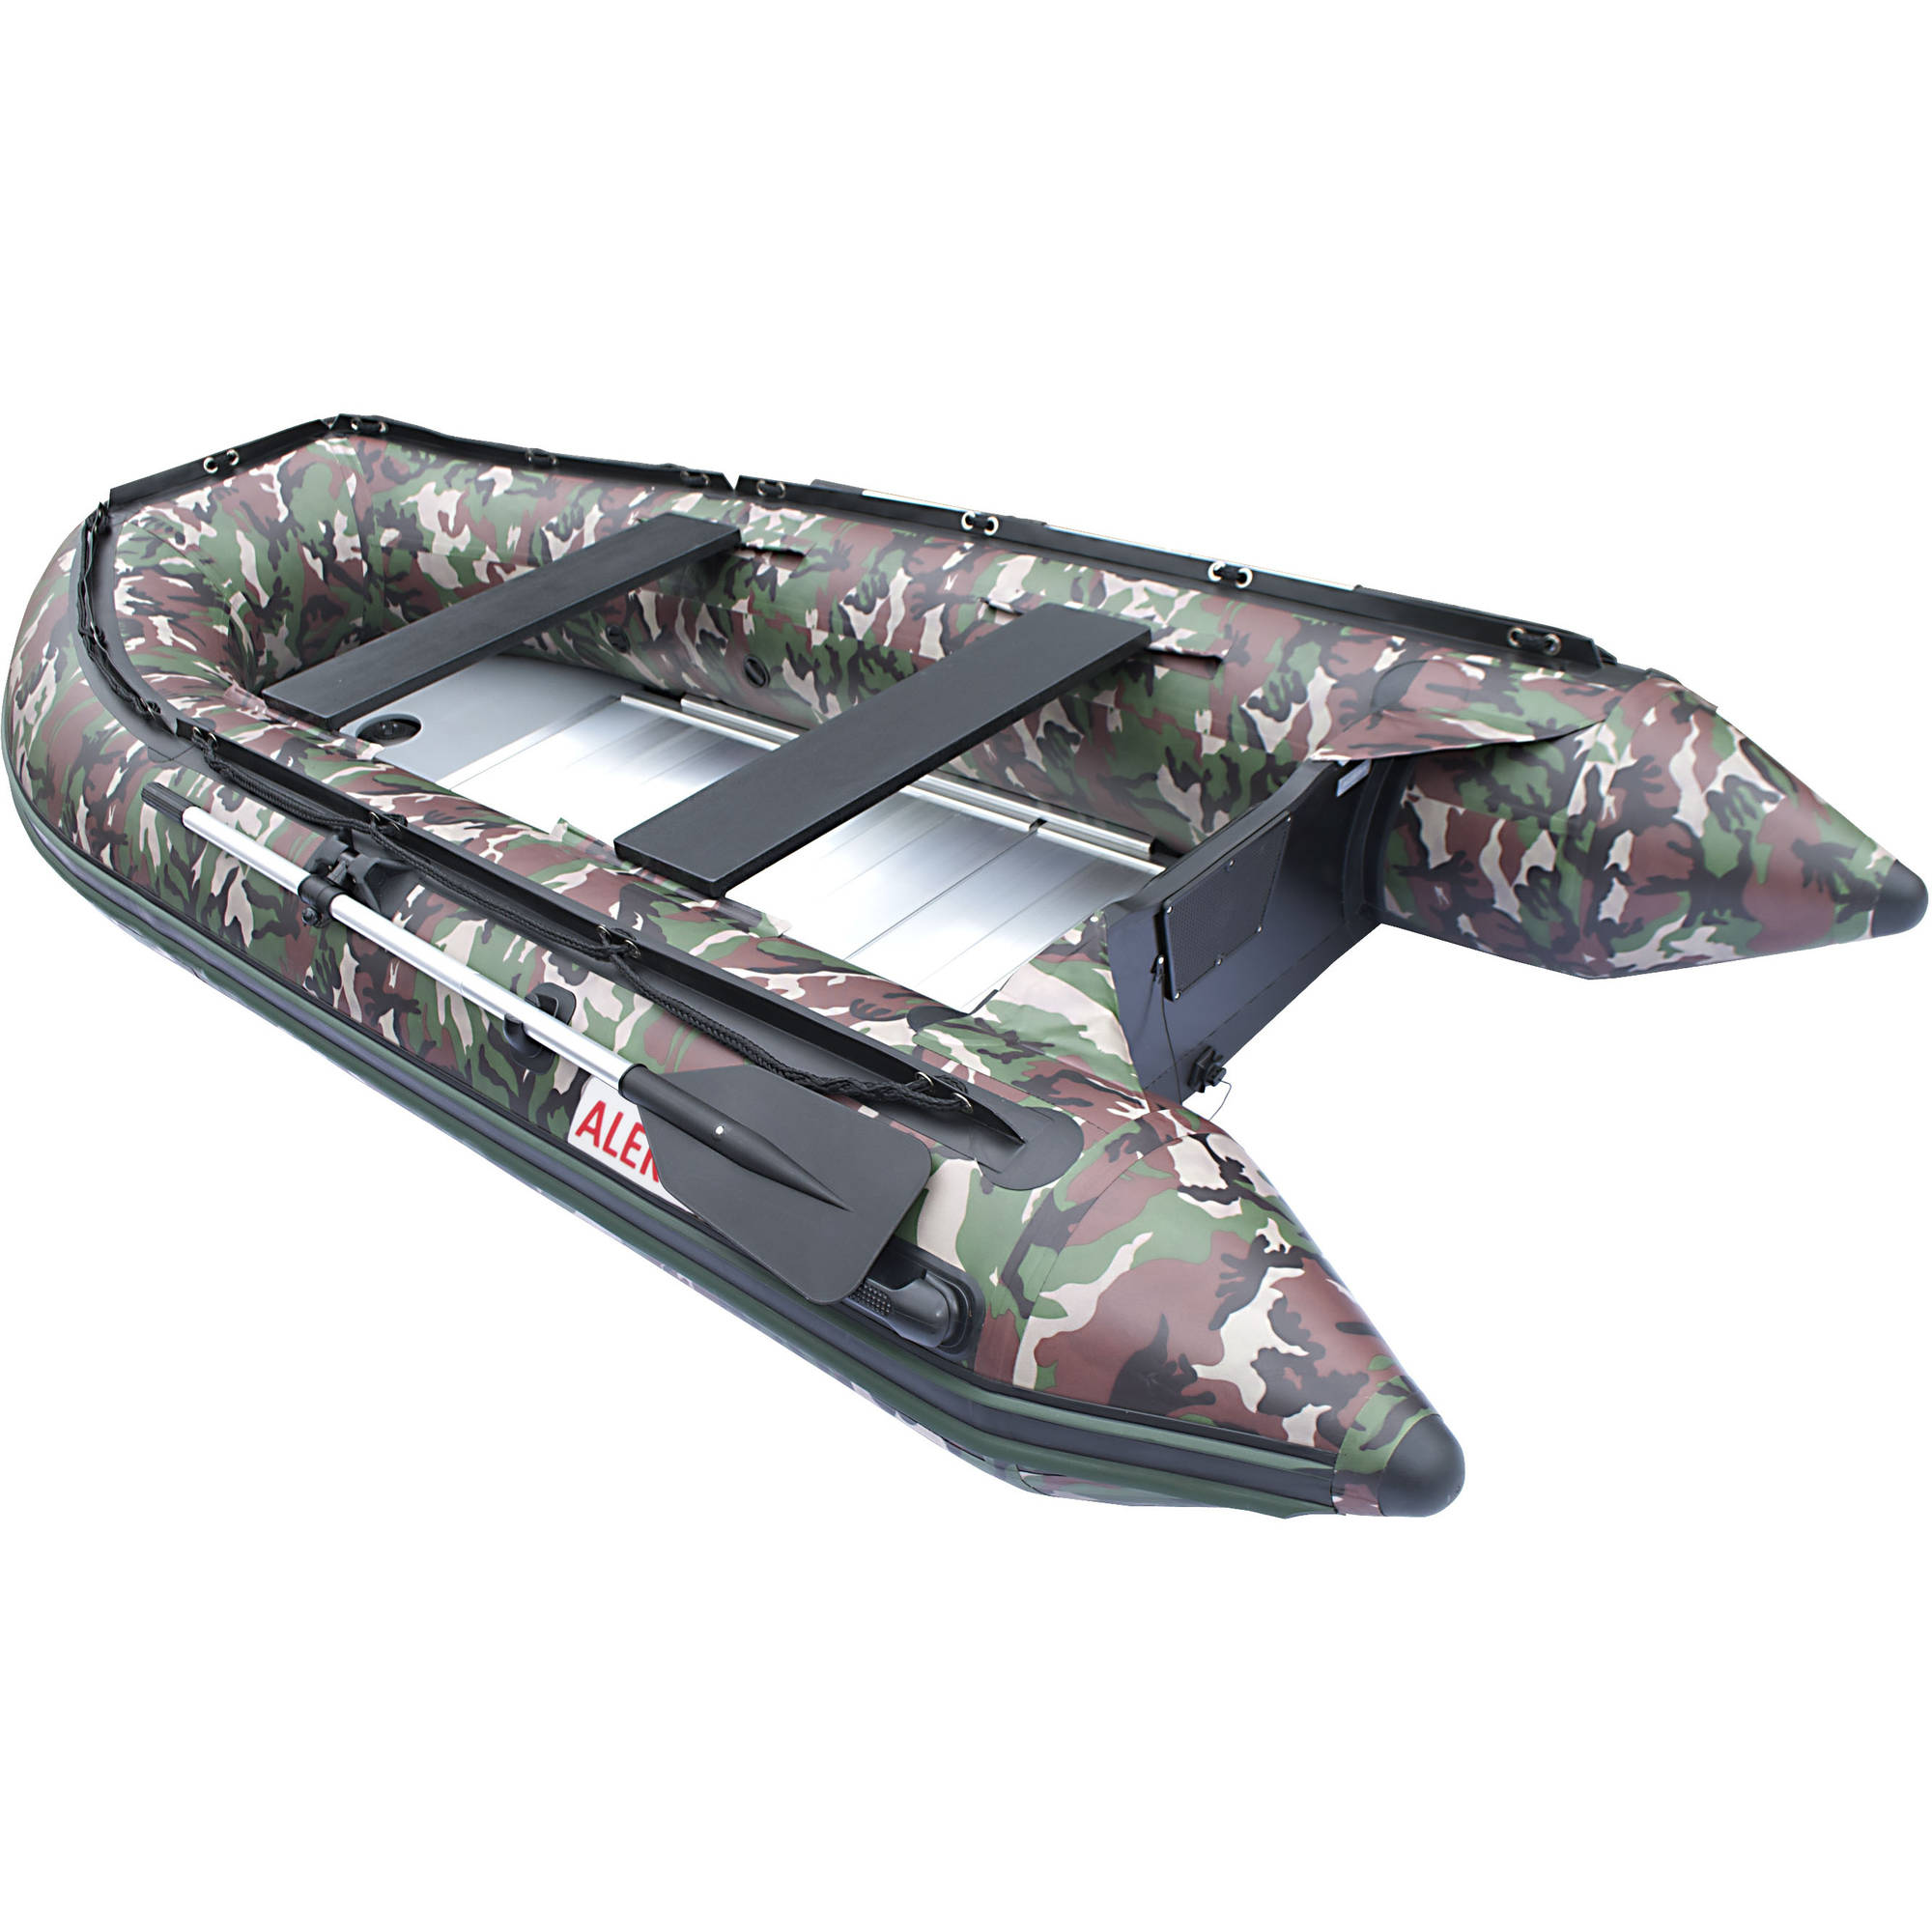 ALEKO BT320CM Inflatable 4-Person Fishing Boat, 10.5', Camouflage by ALEKO